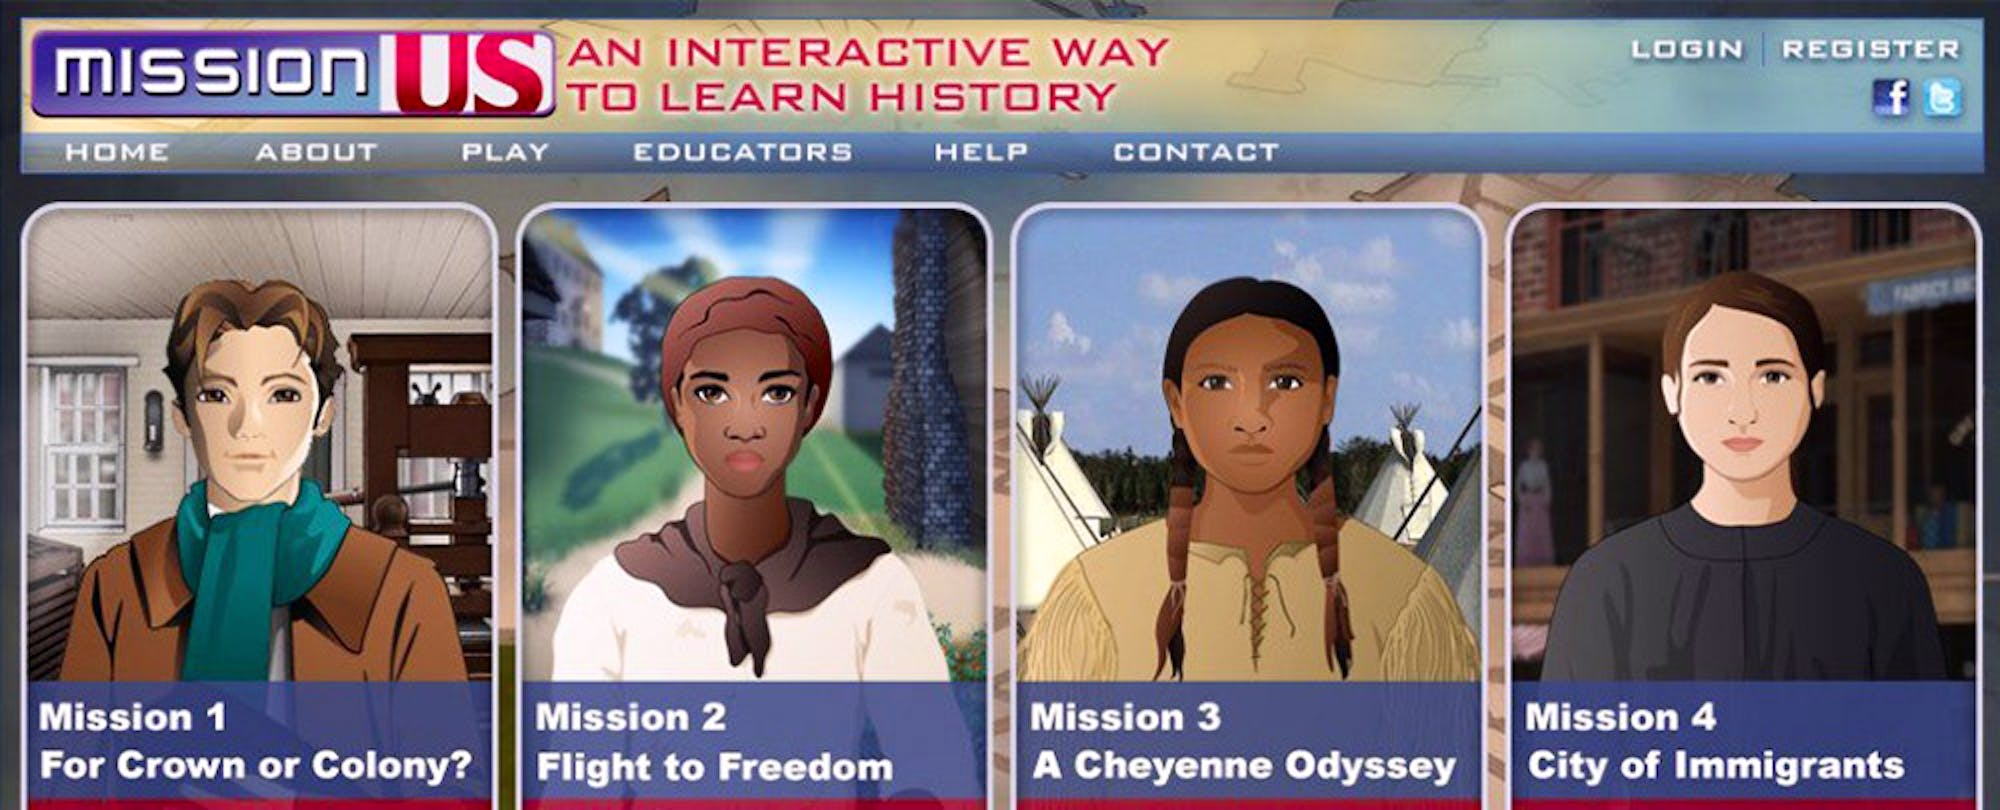 Is a Slave Simulation Game Appropriate for Classrooms?